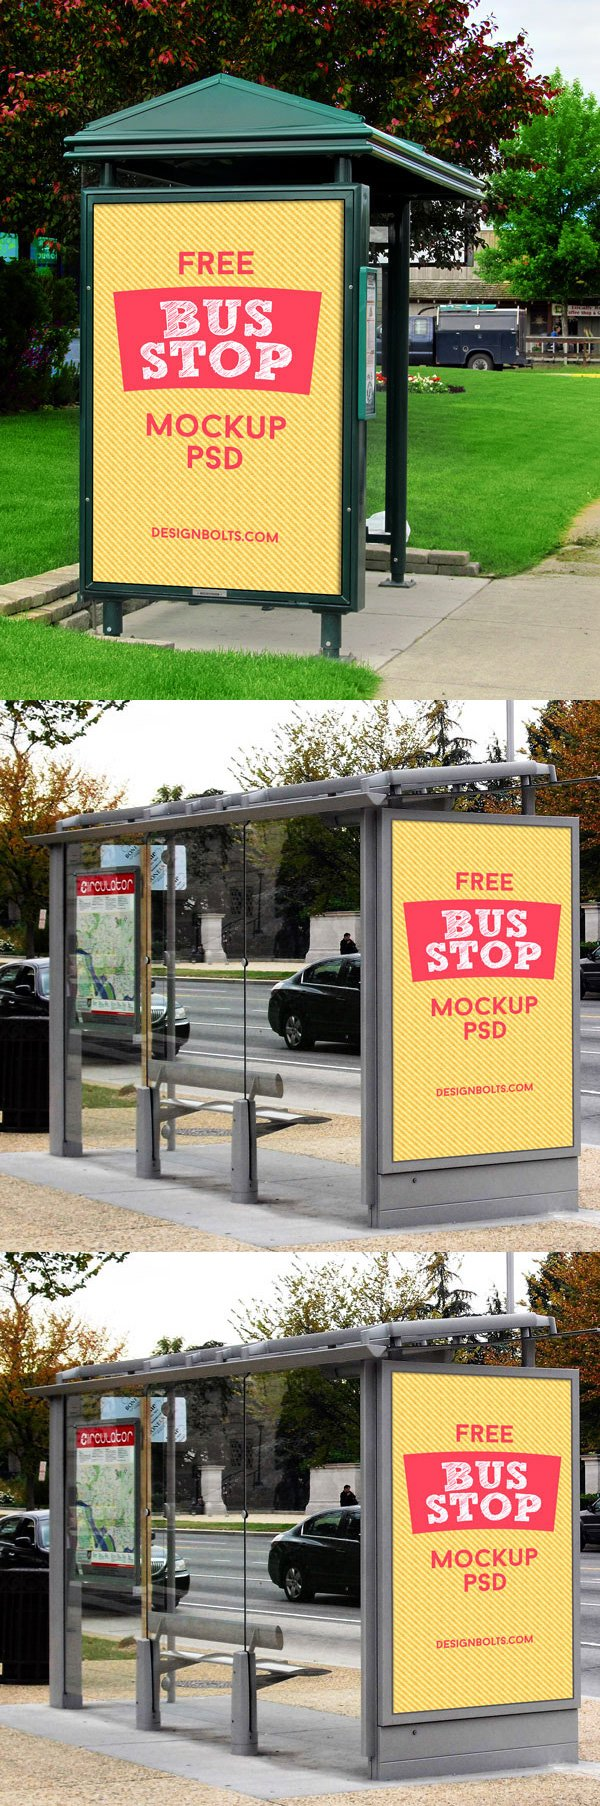 3 Free HQ Outdoor Advertising Bus Stop Mockup PSD